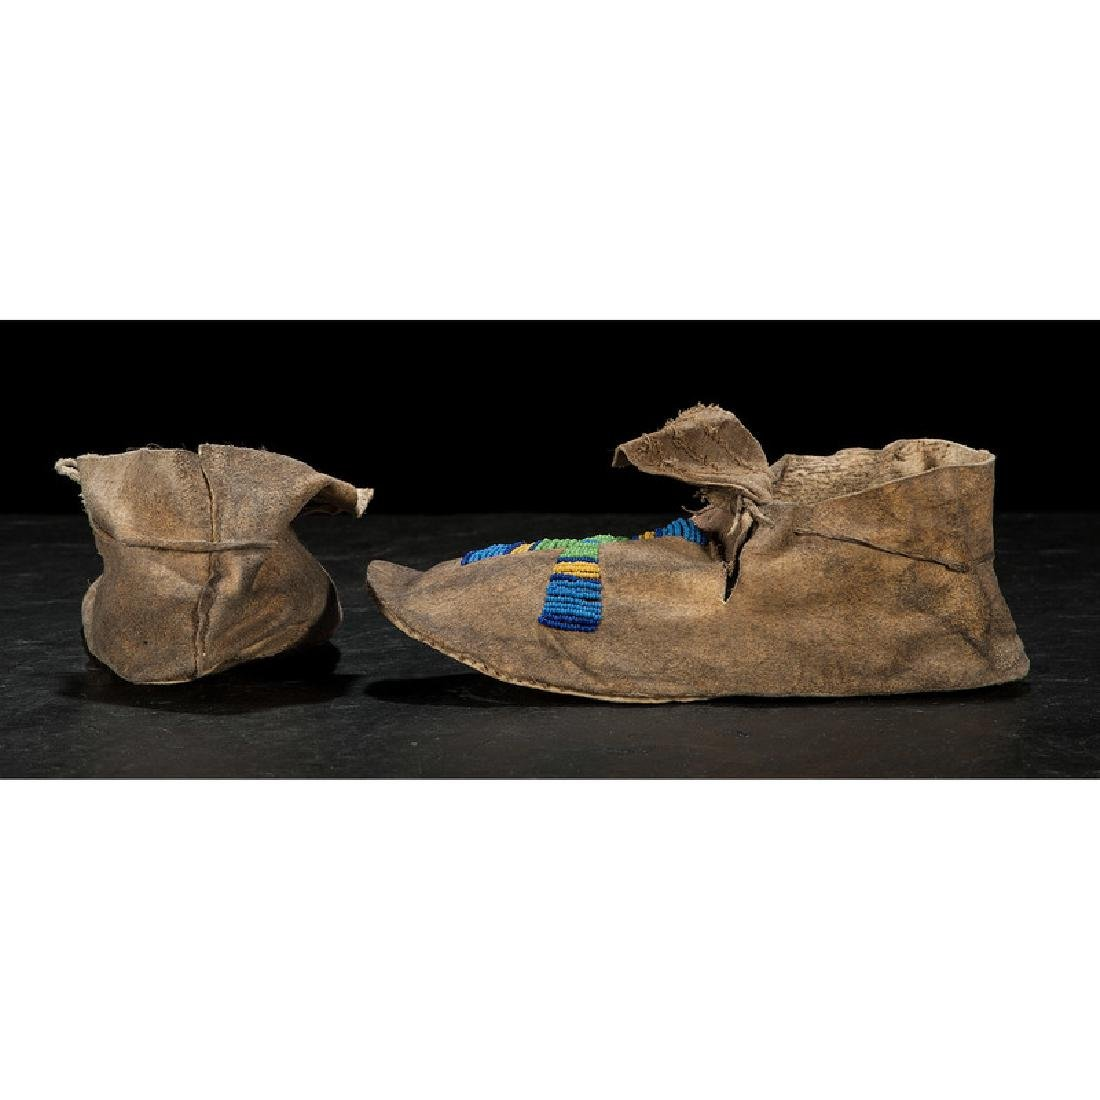 Cheyenne Beaded Hide Moccasins - 3